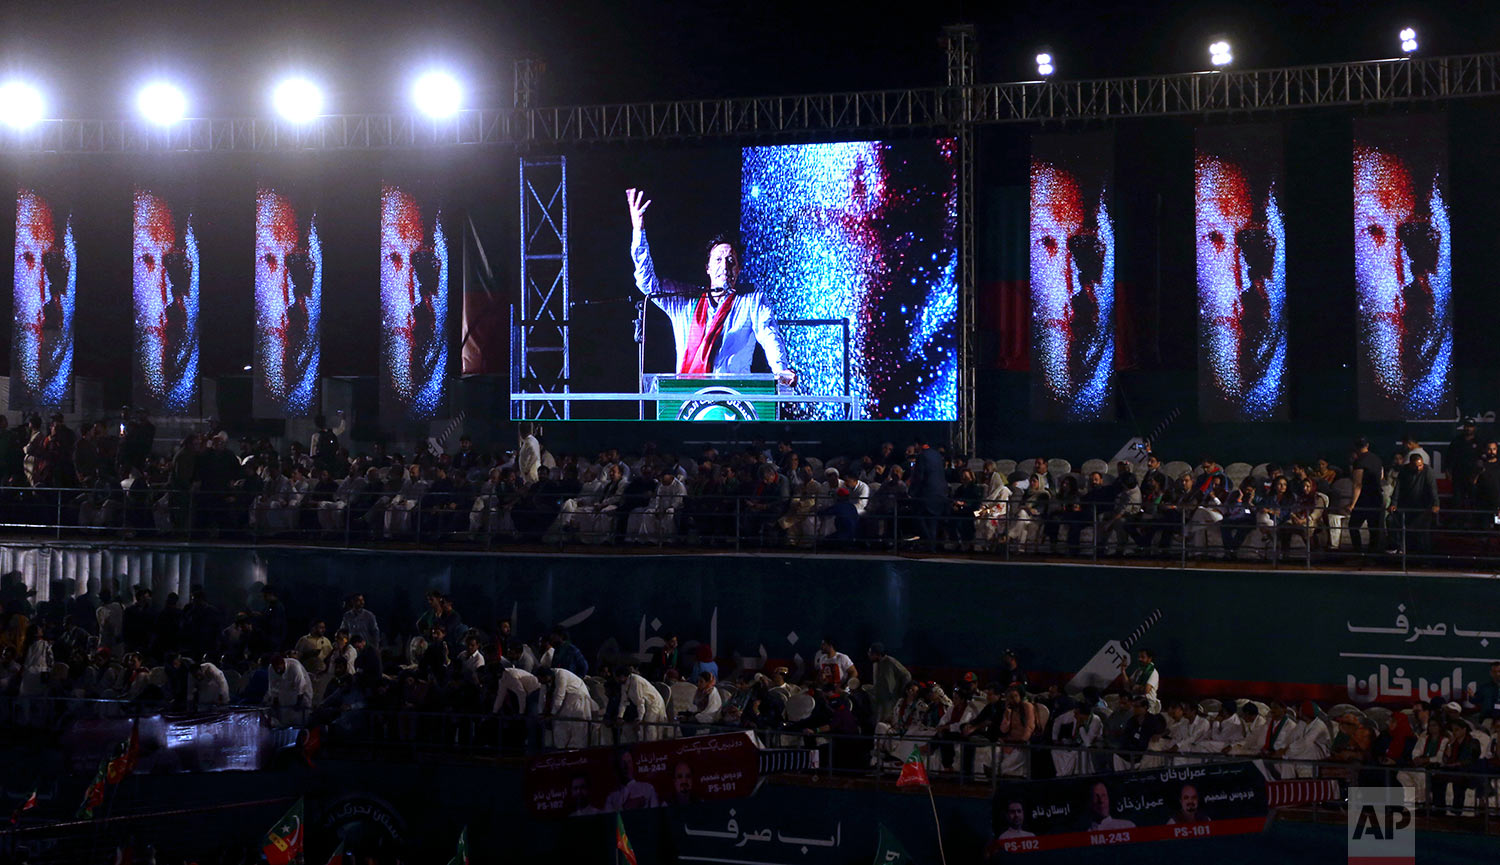 Pakistani politician Imran Khan, chief of Pakistan Tehreek-e-Insaf party, addresses his supporters during an election campaign rally in Karachi, Pakistan, Sunday, July 22, 2018. Pakistan will hold general election on July 25. (AP Photo/Shakil Adil)